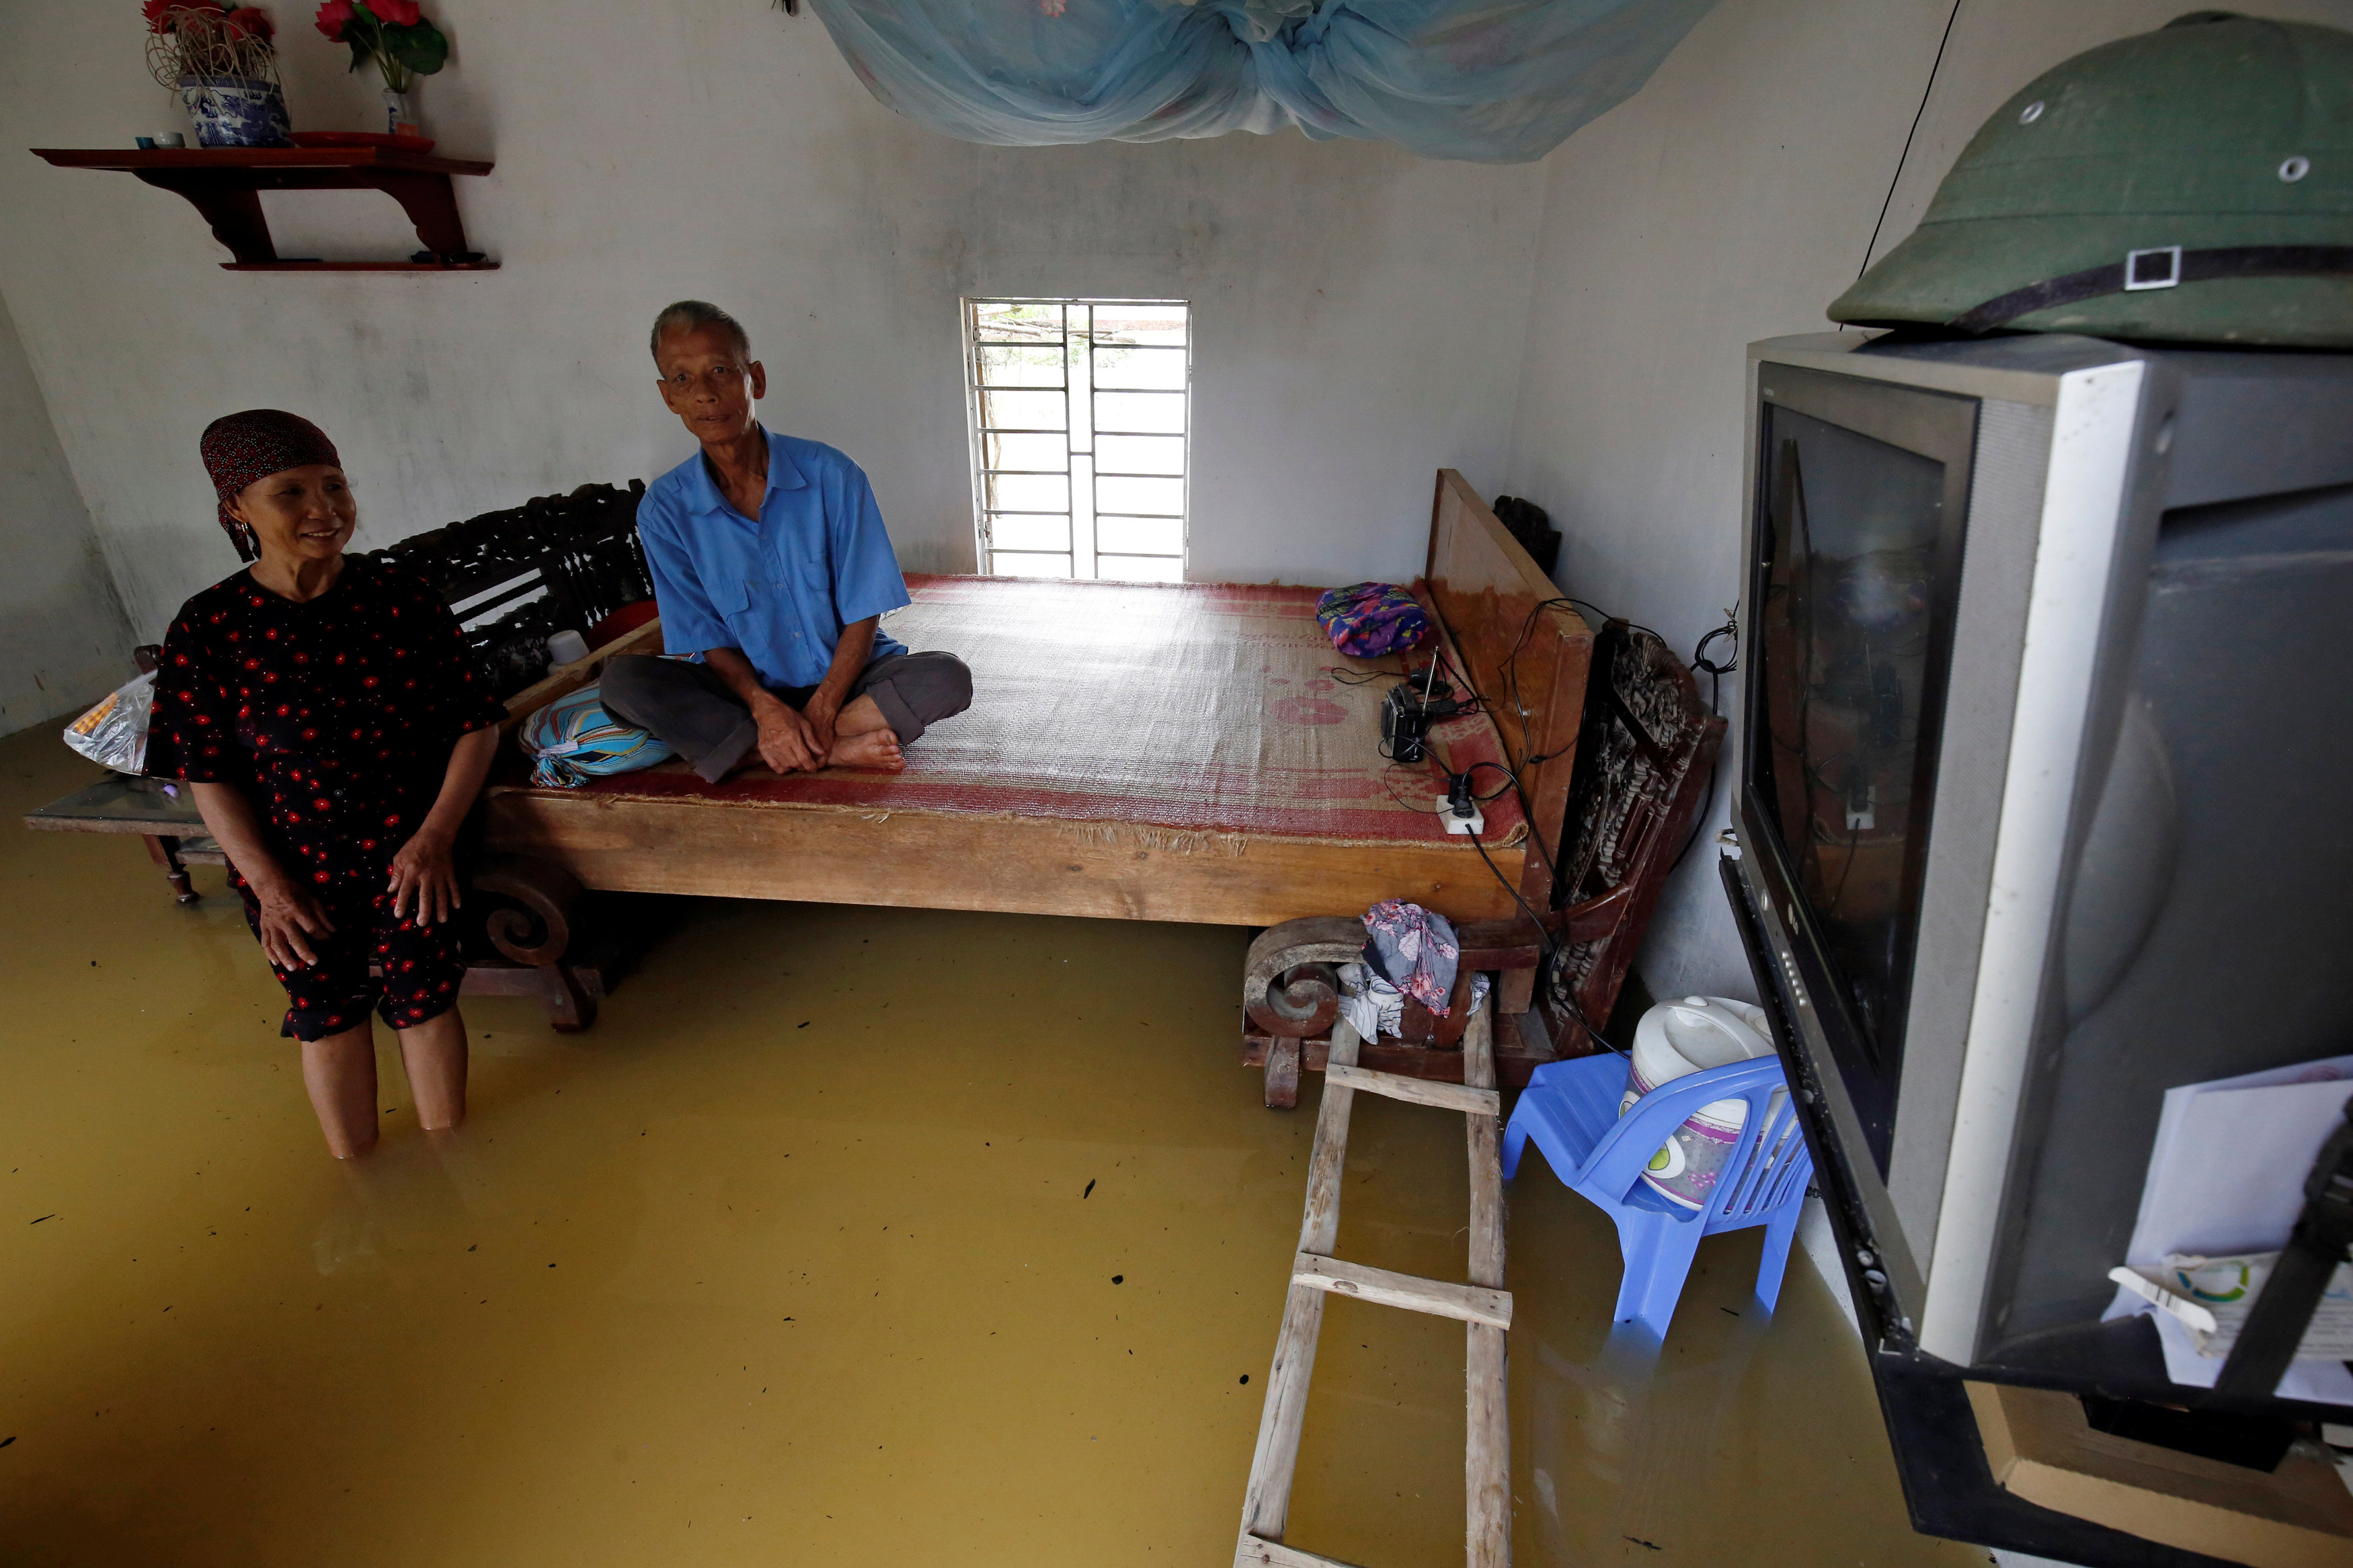 A couple watches TV in their flooded house after a tropical depression in Hanoi, Vietnam October 13, 2017. REUTERS/Kham